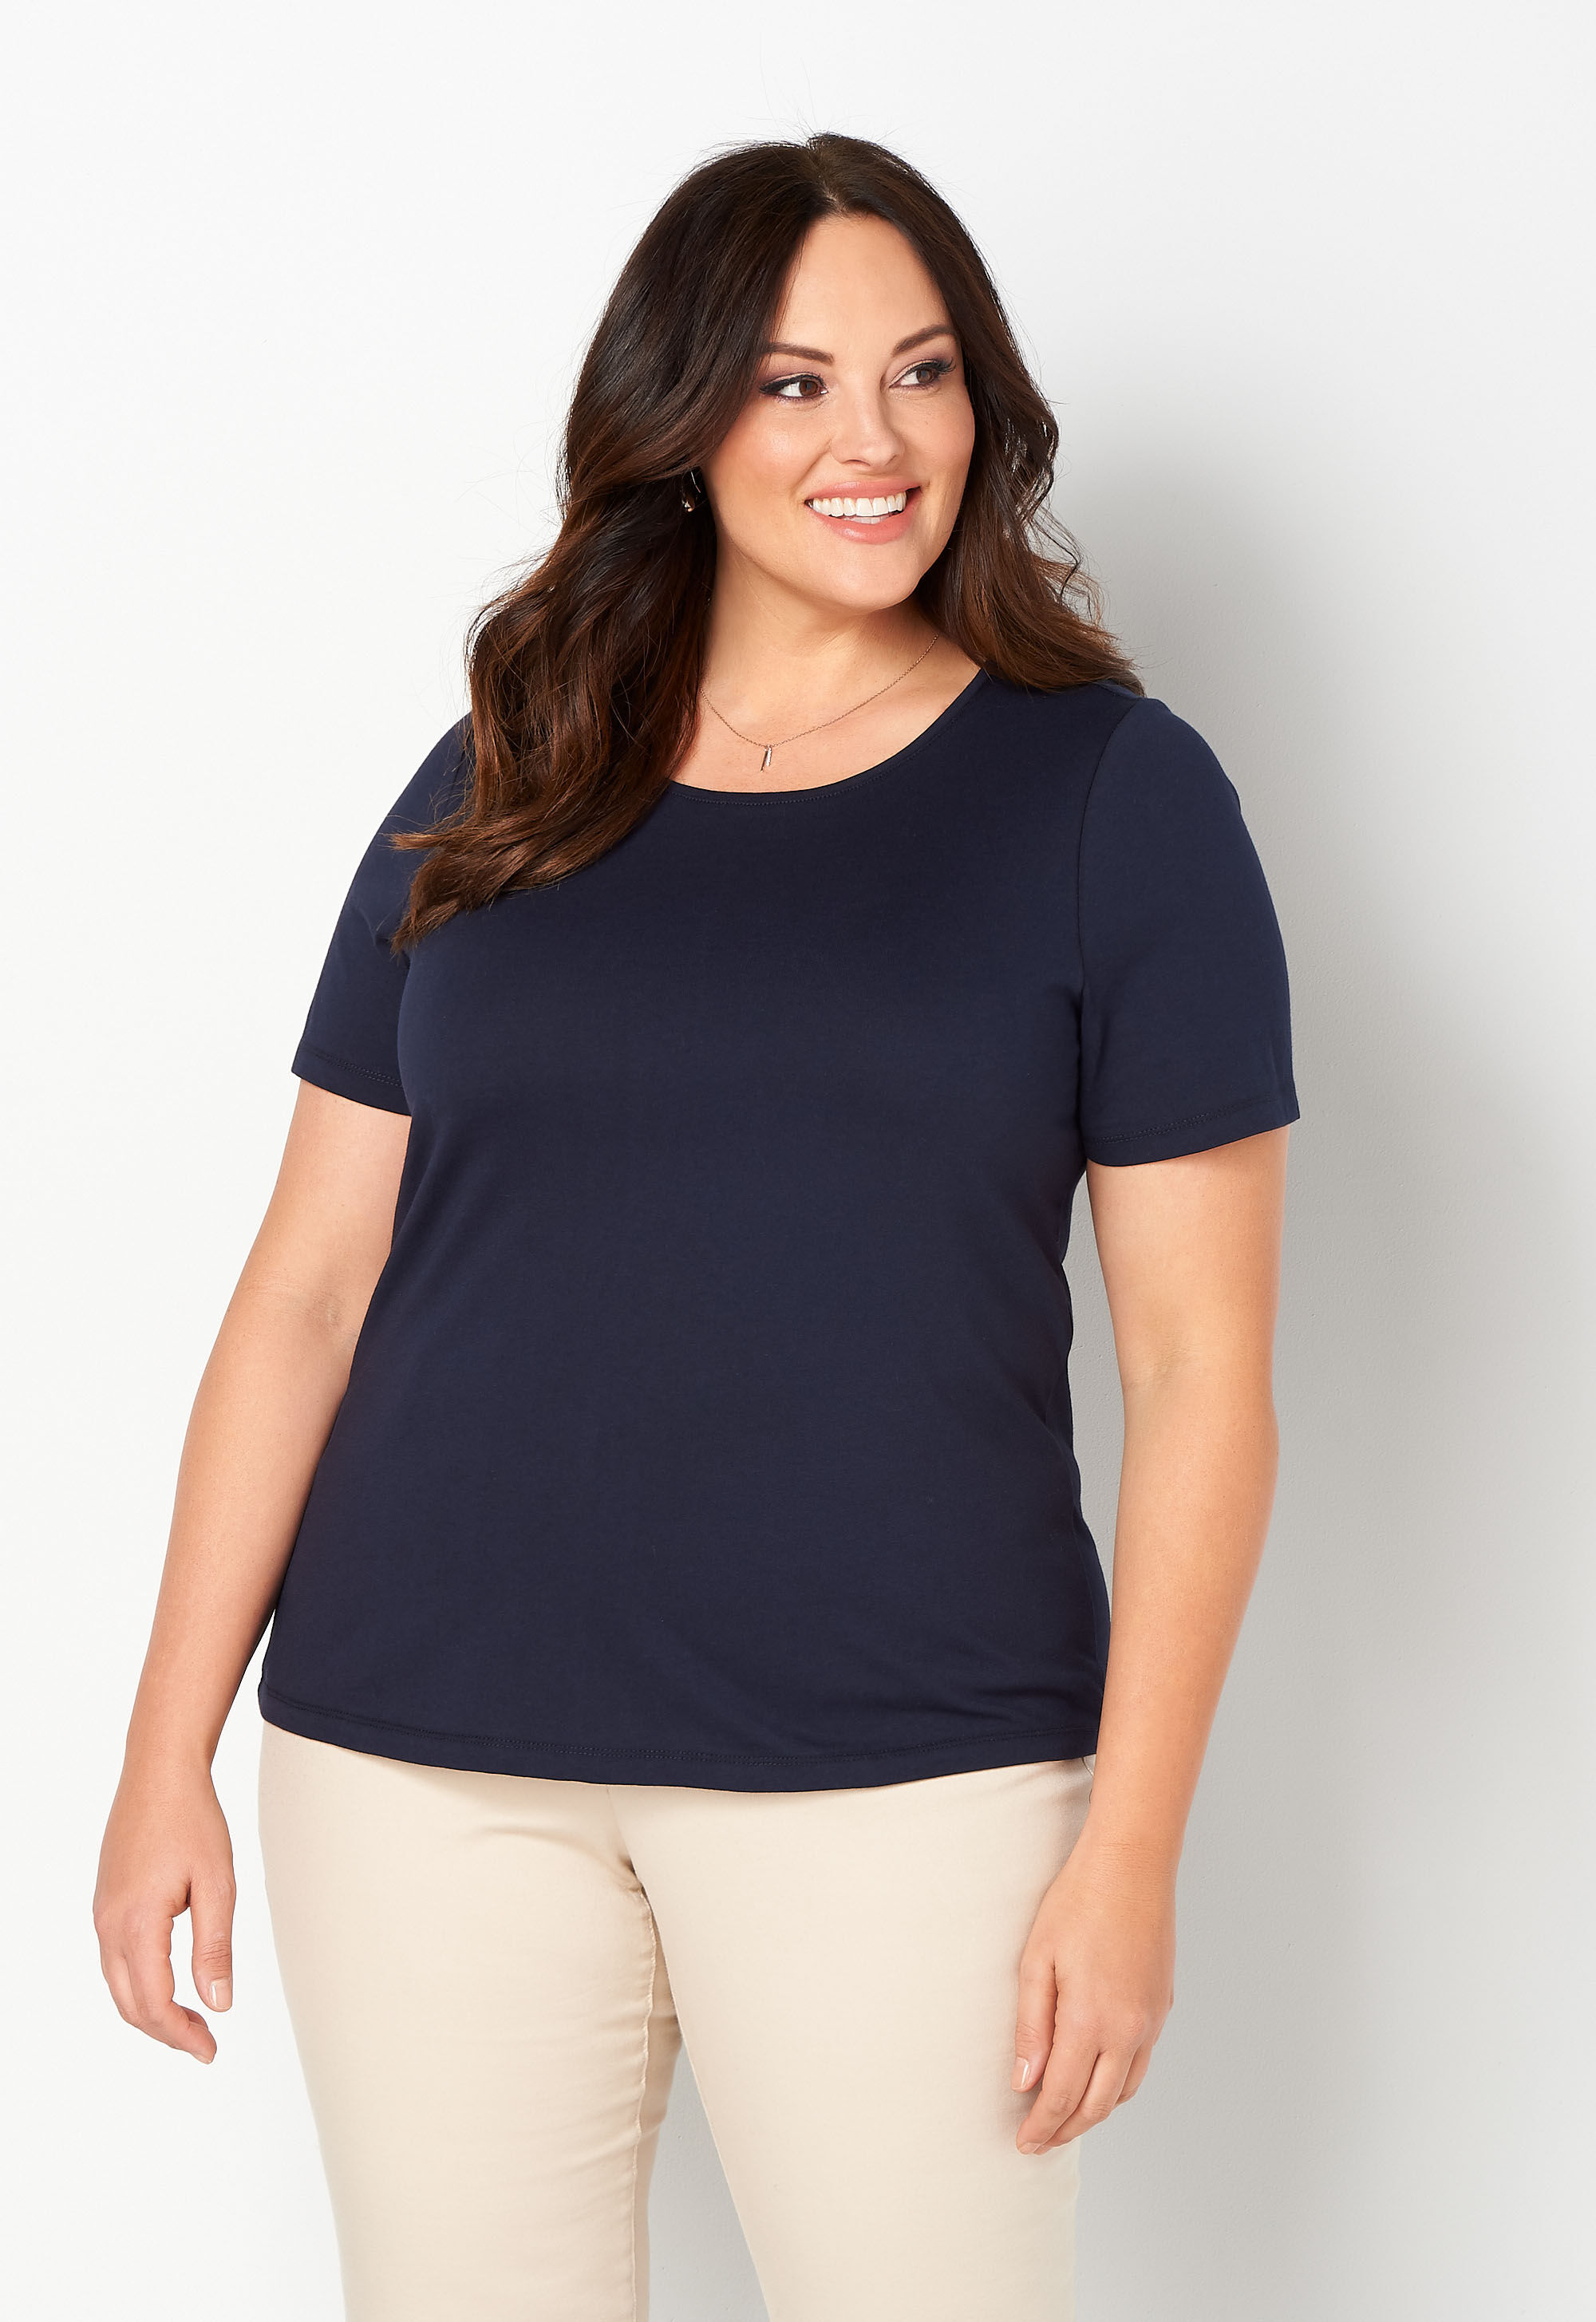 Short Sleeve Jewel Neck Plus Size Tee 5